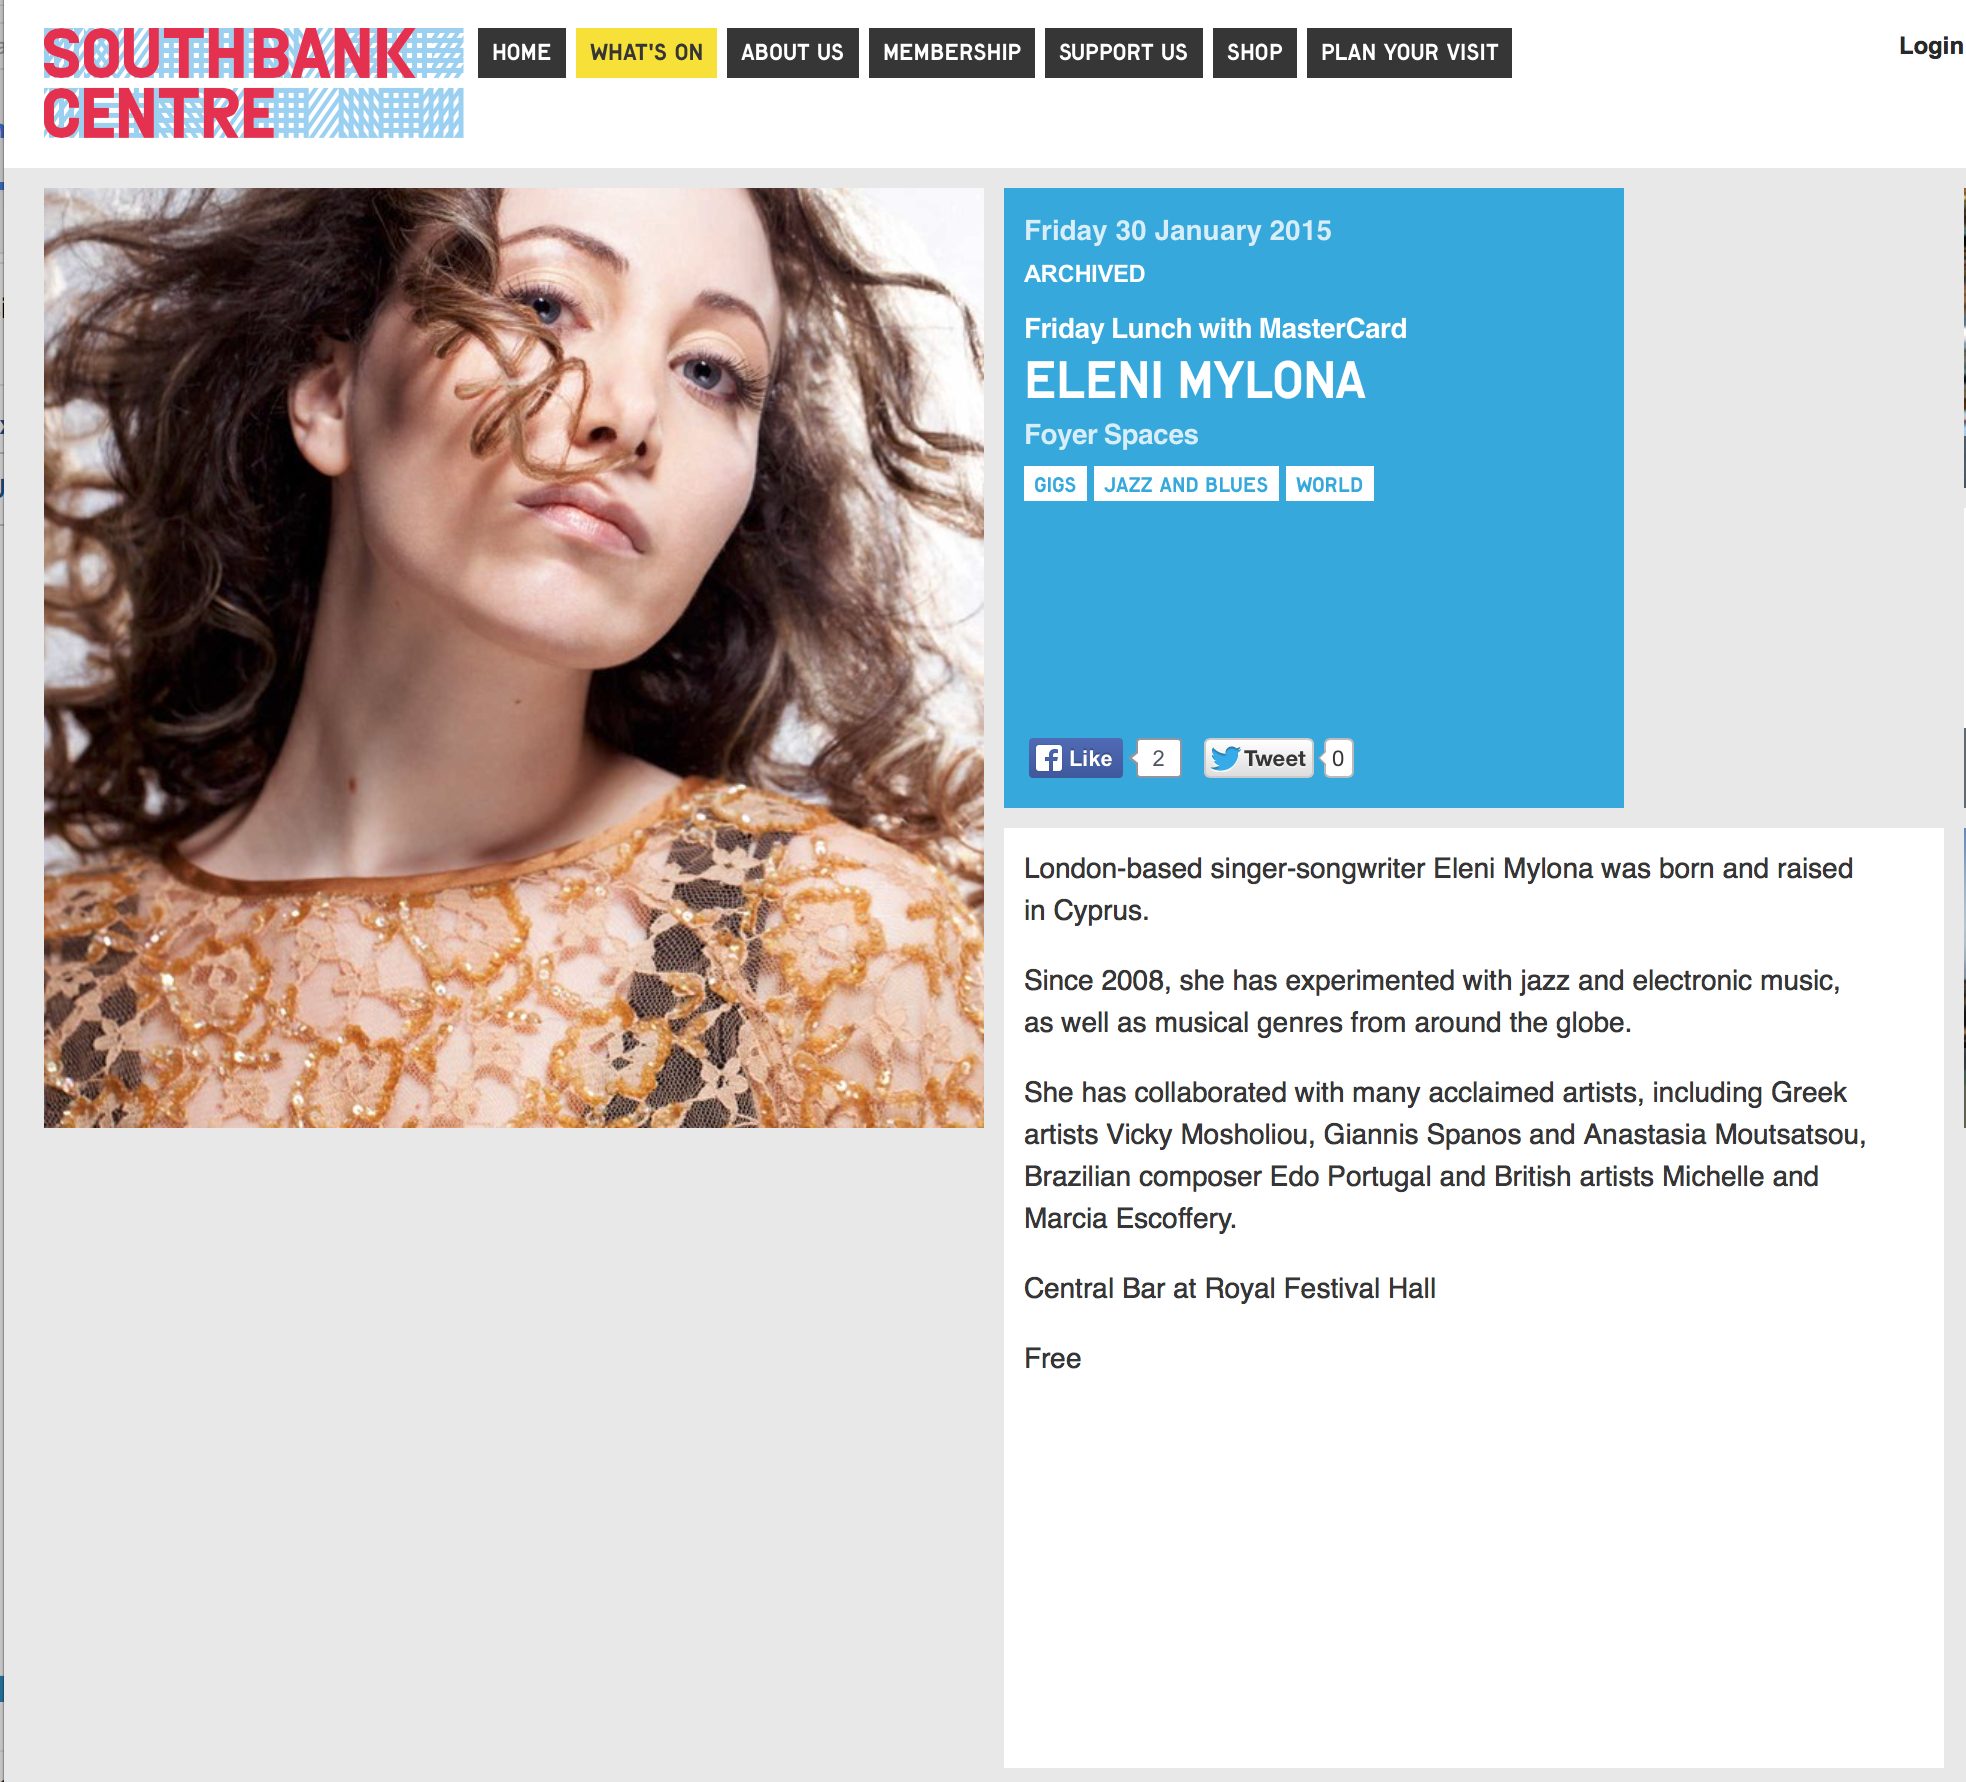 Photo: screenshot of Southbank Centre displaying image by London Fashion Photographer Margaret Yescombe